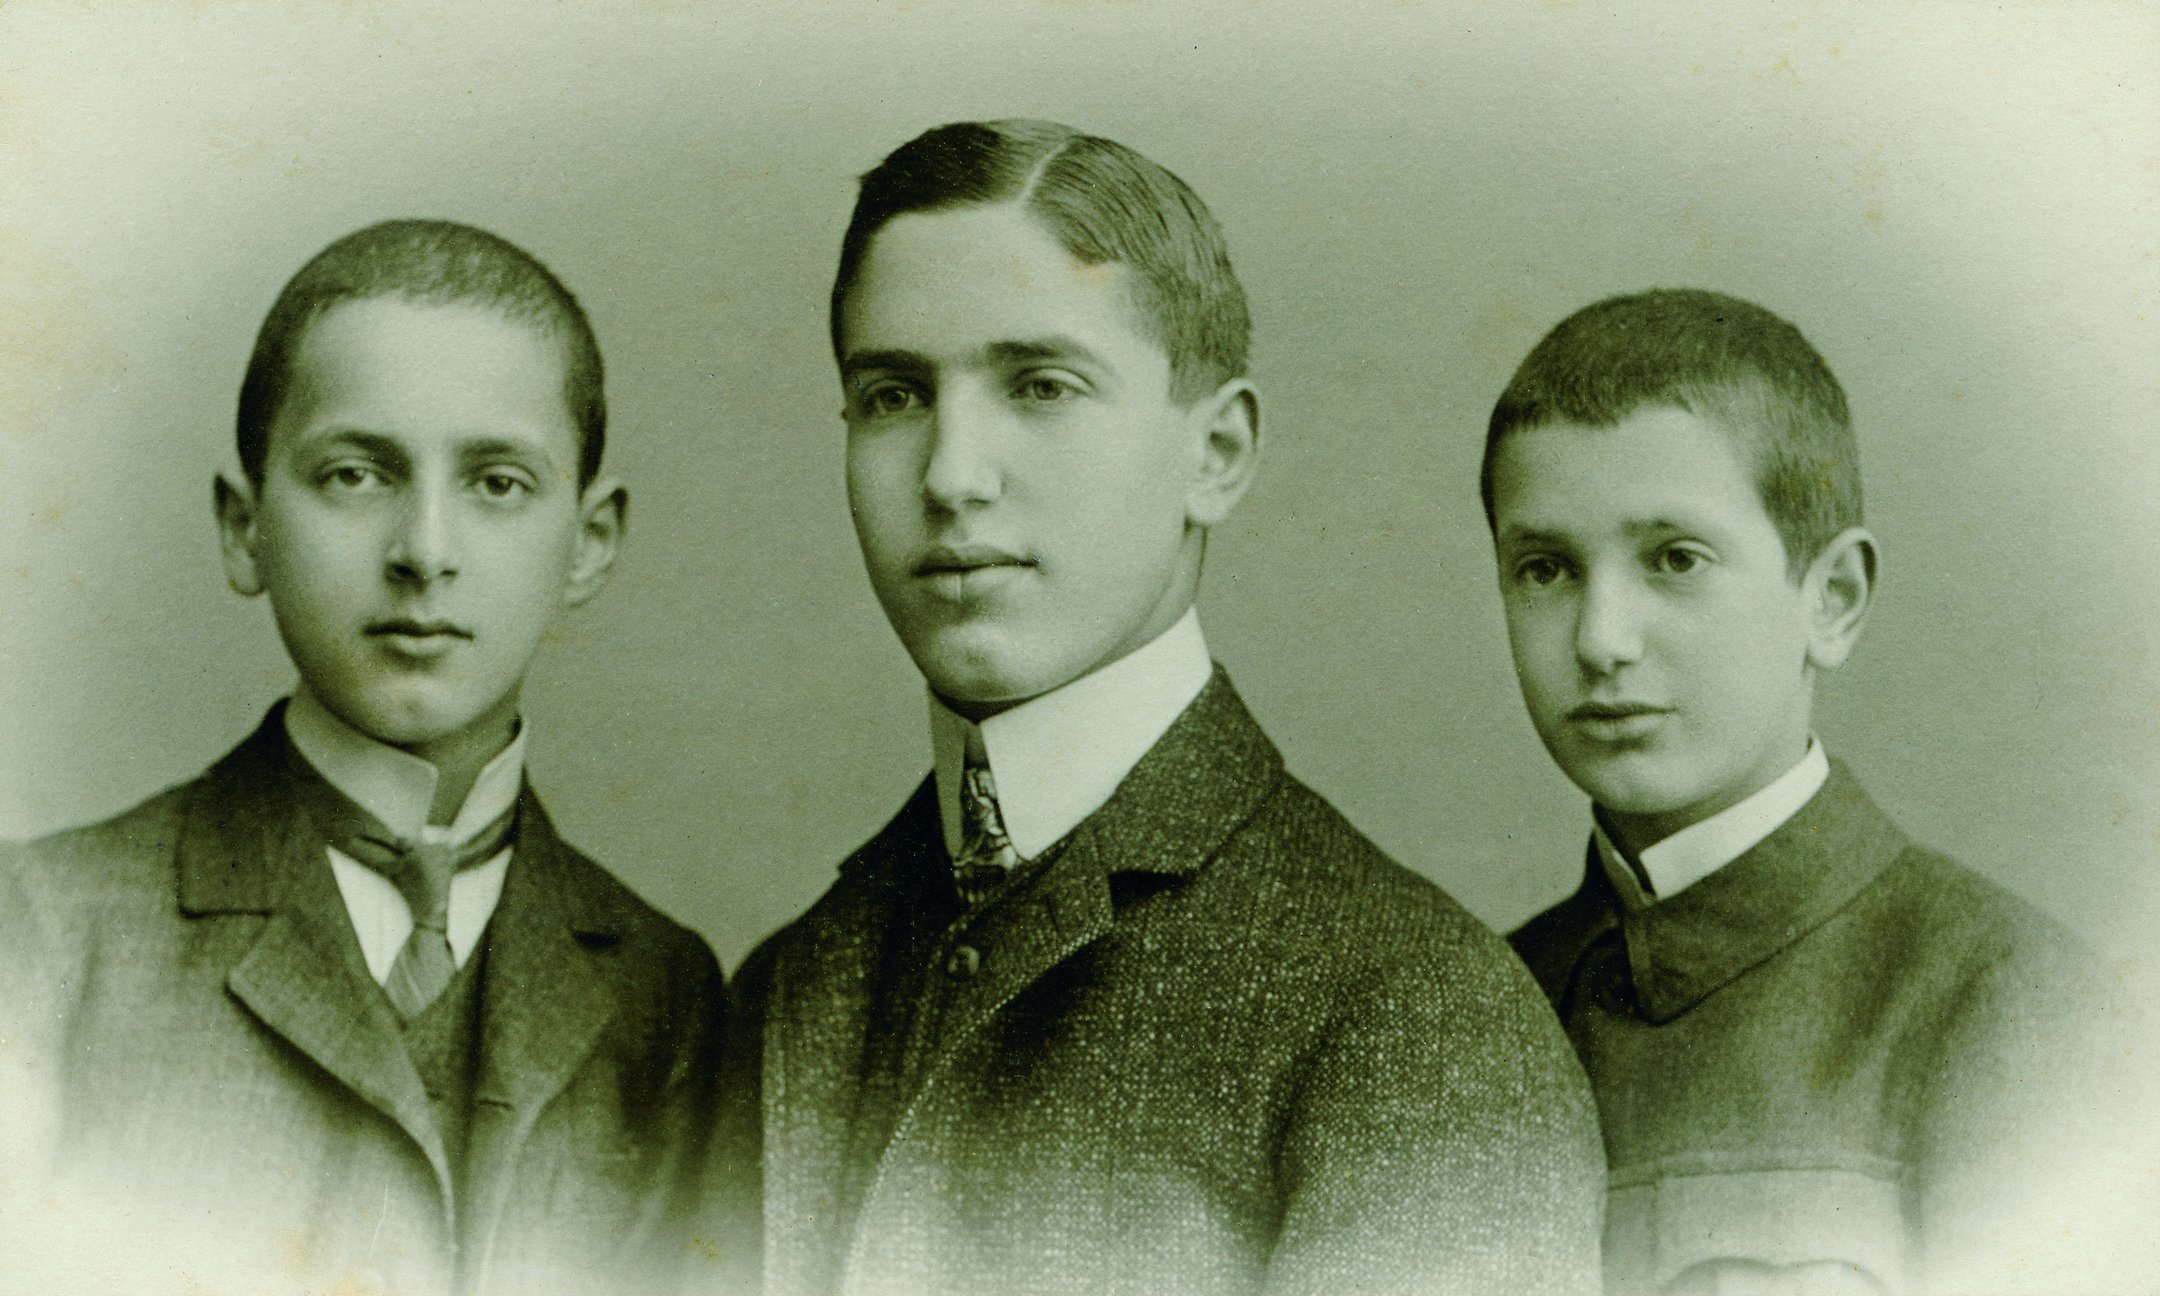 Fritz Pfeffer (middle) with two of his brothers, around 1910.